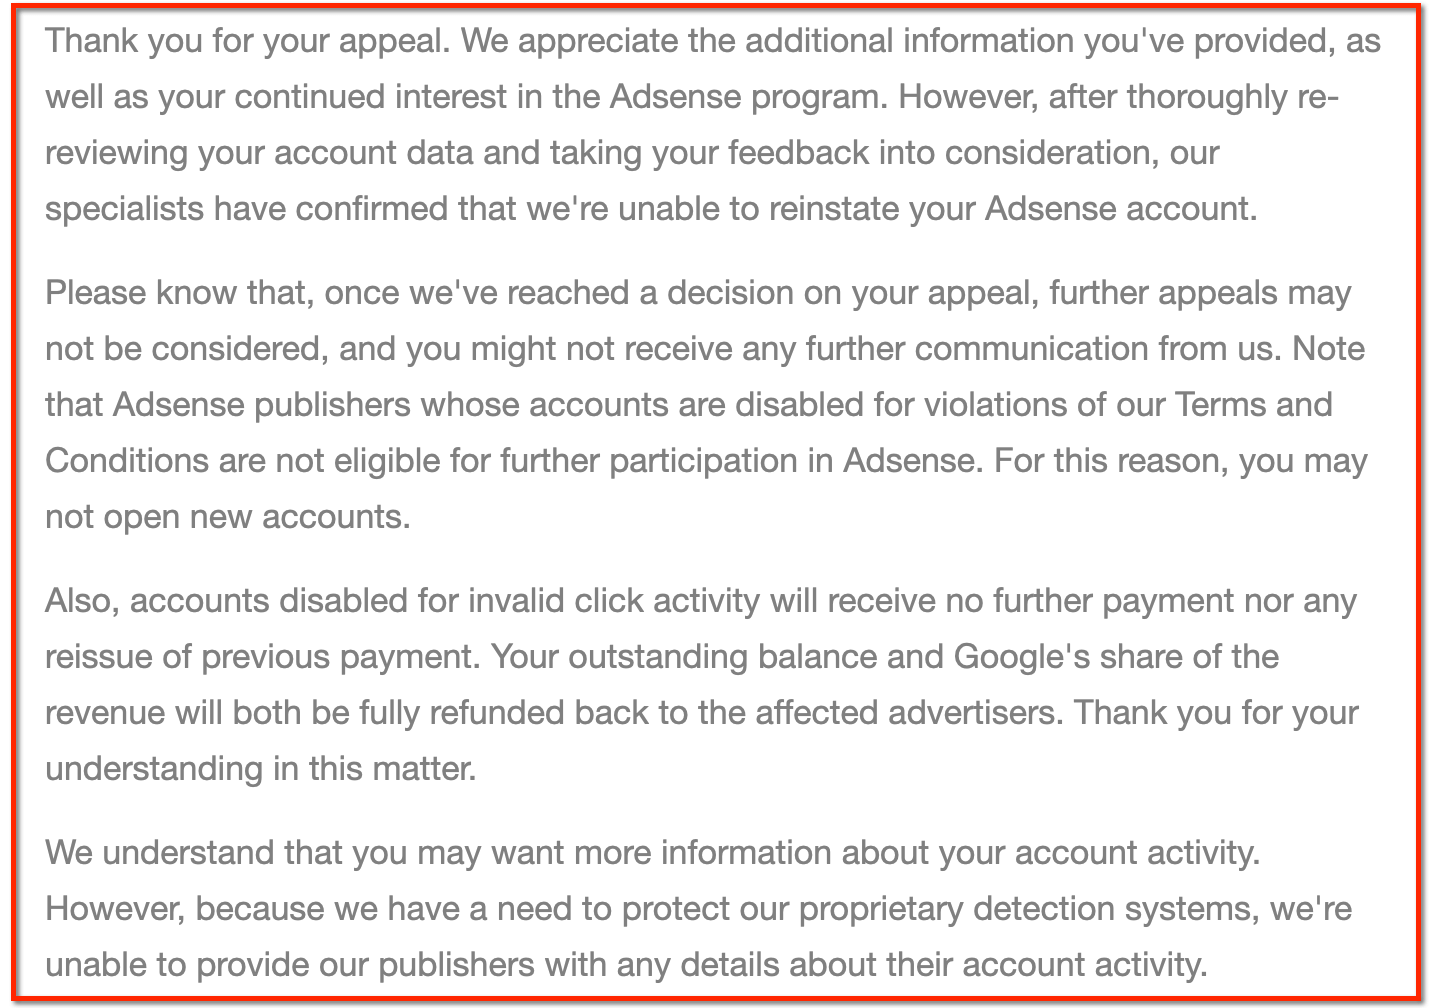 letter-from-adsense